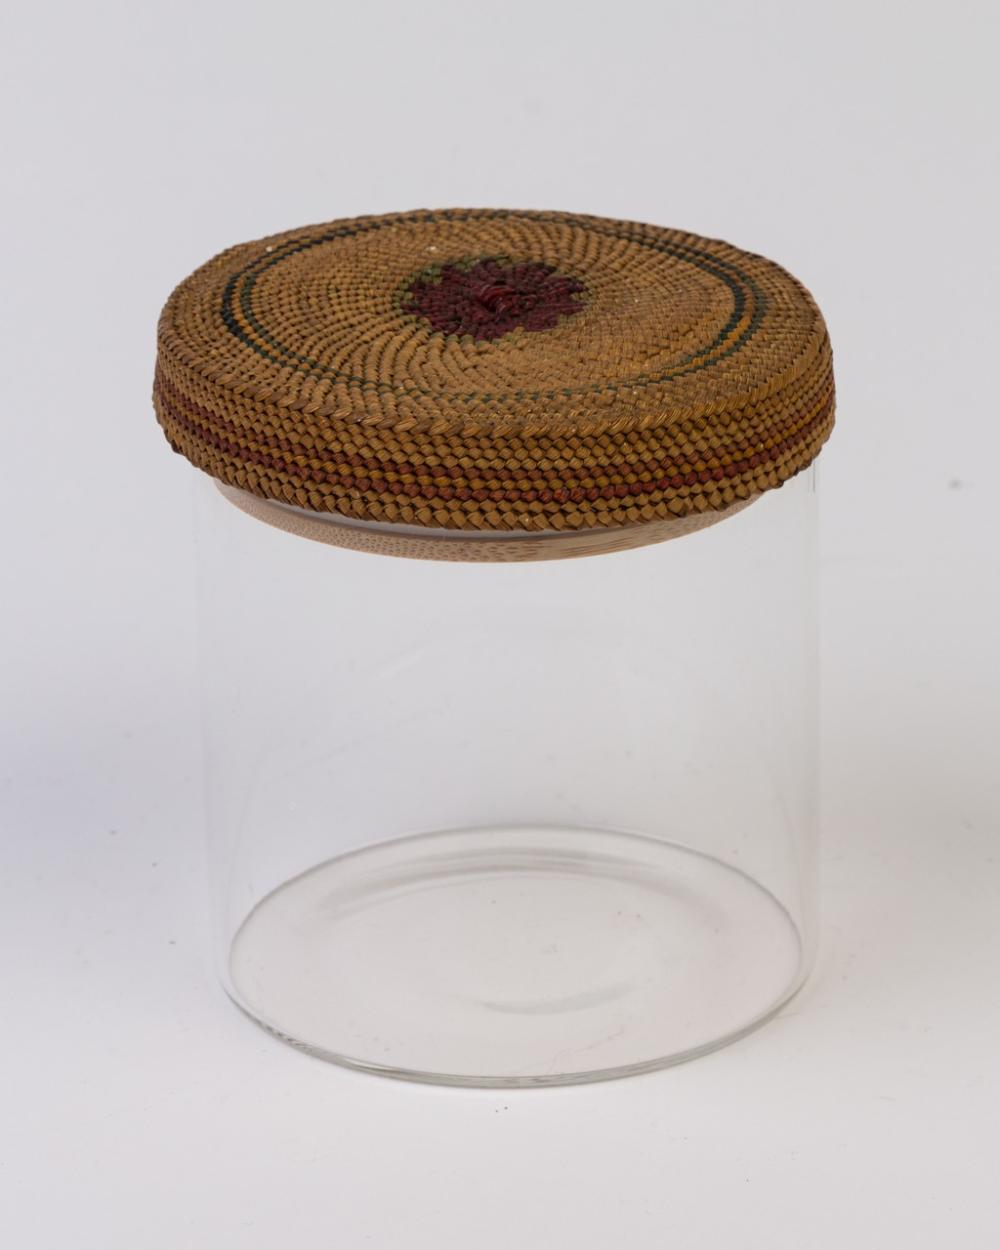 A glass jar with a Nuu-chah-nulth woven grass Iid.